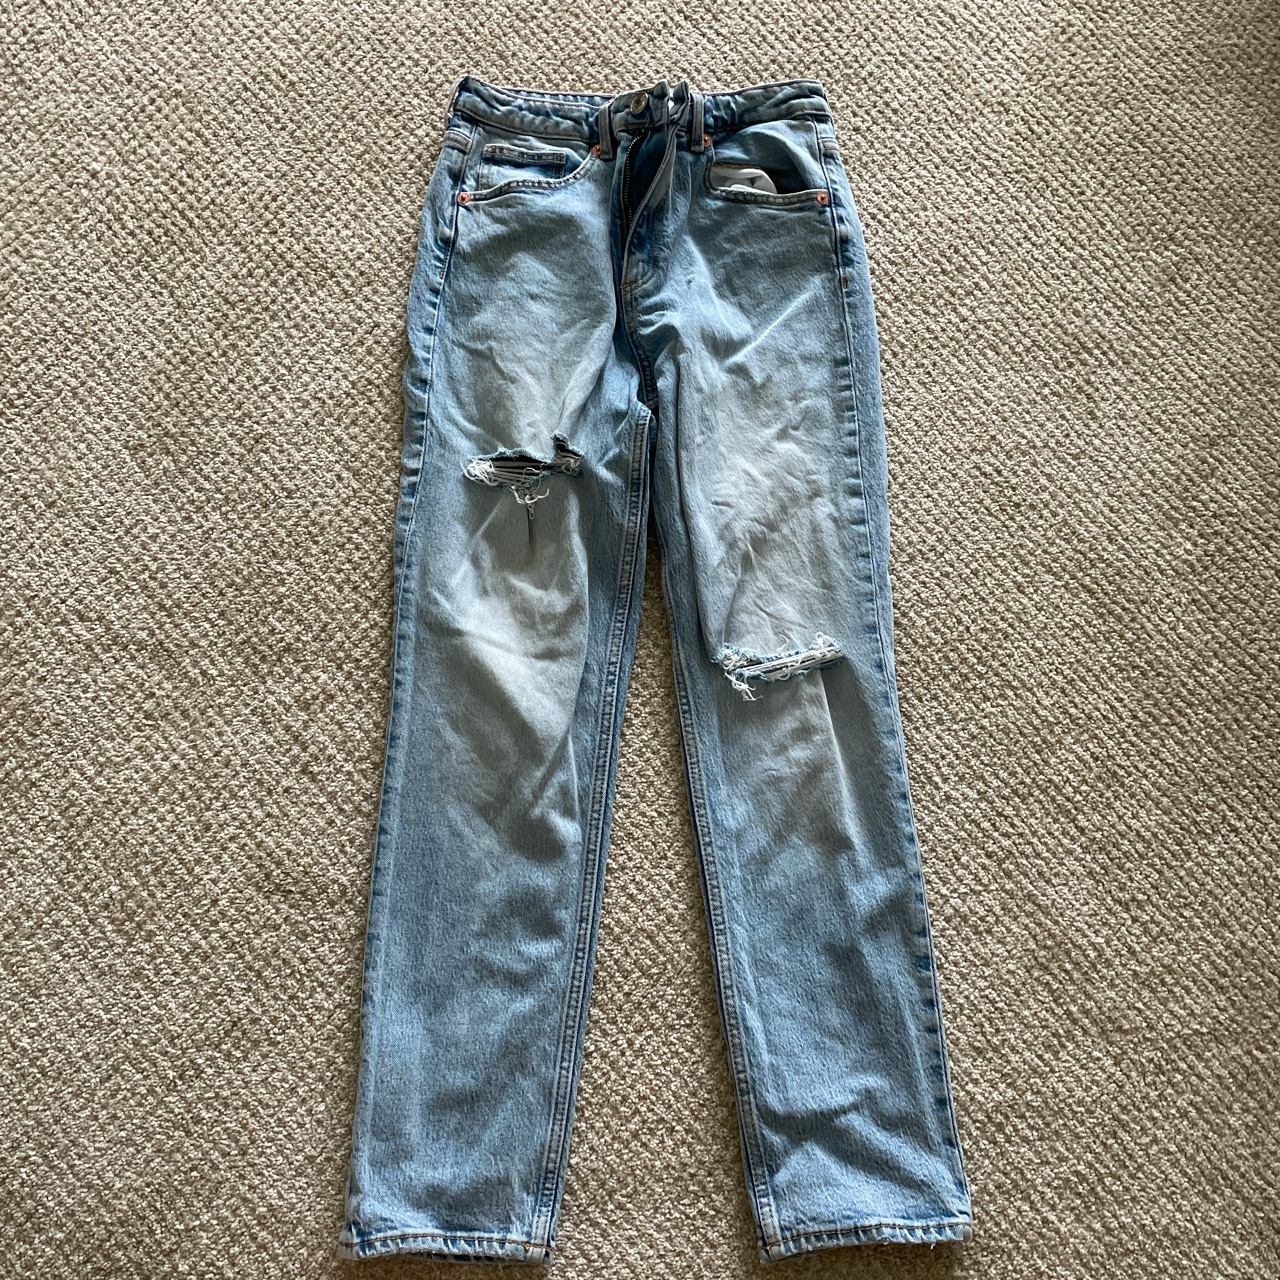 Product Image 1 - Slim Fit Hi-Rise Ripped Jeans Purchased